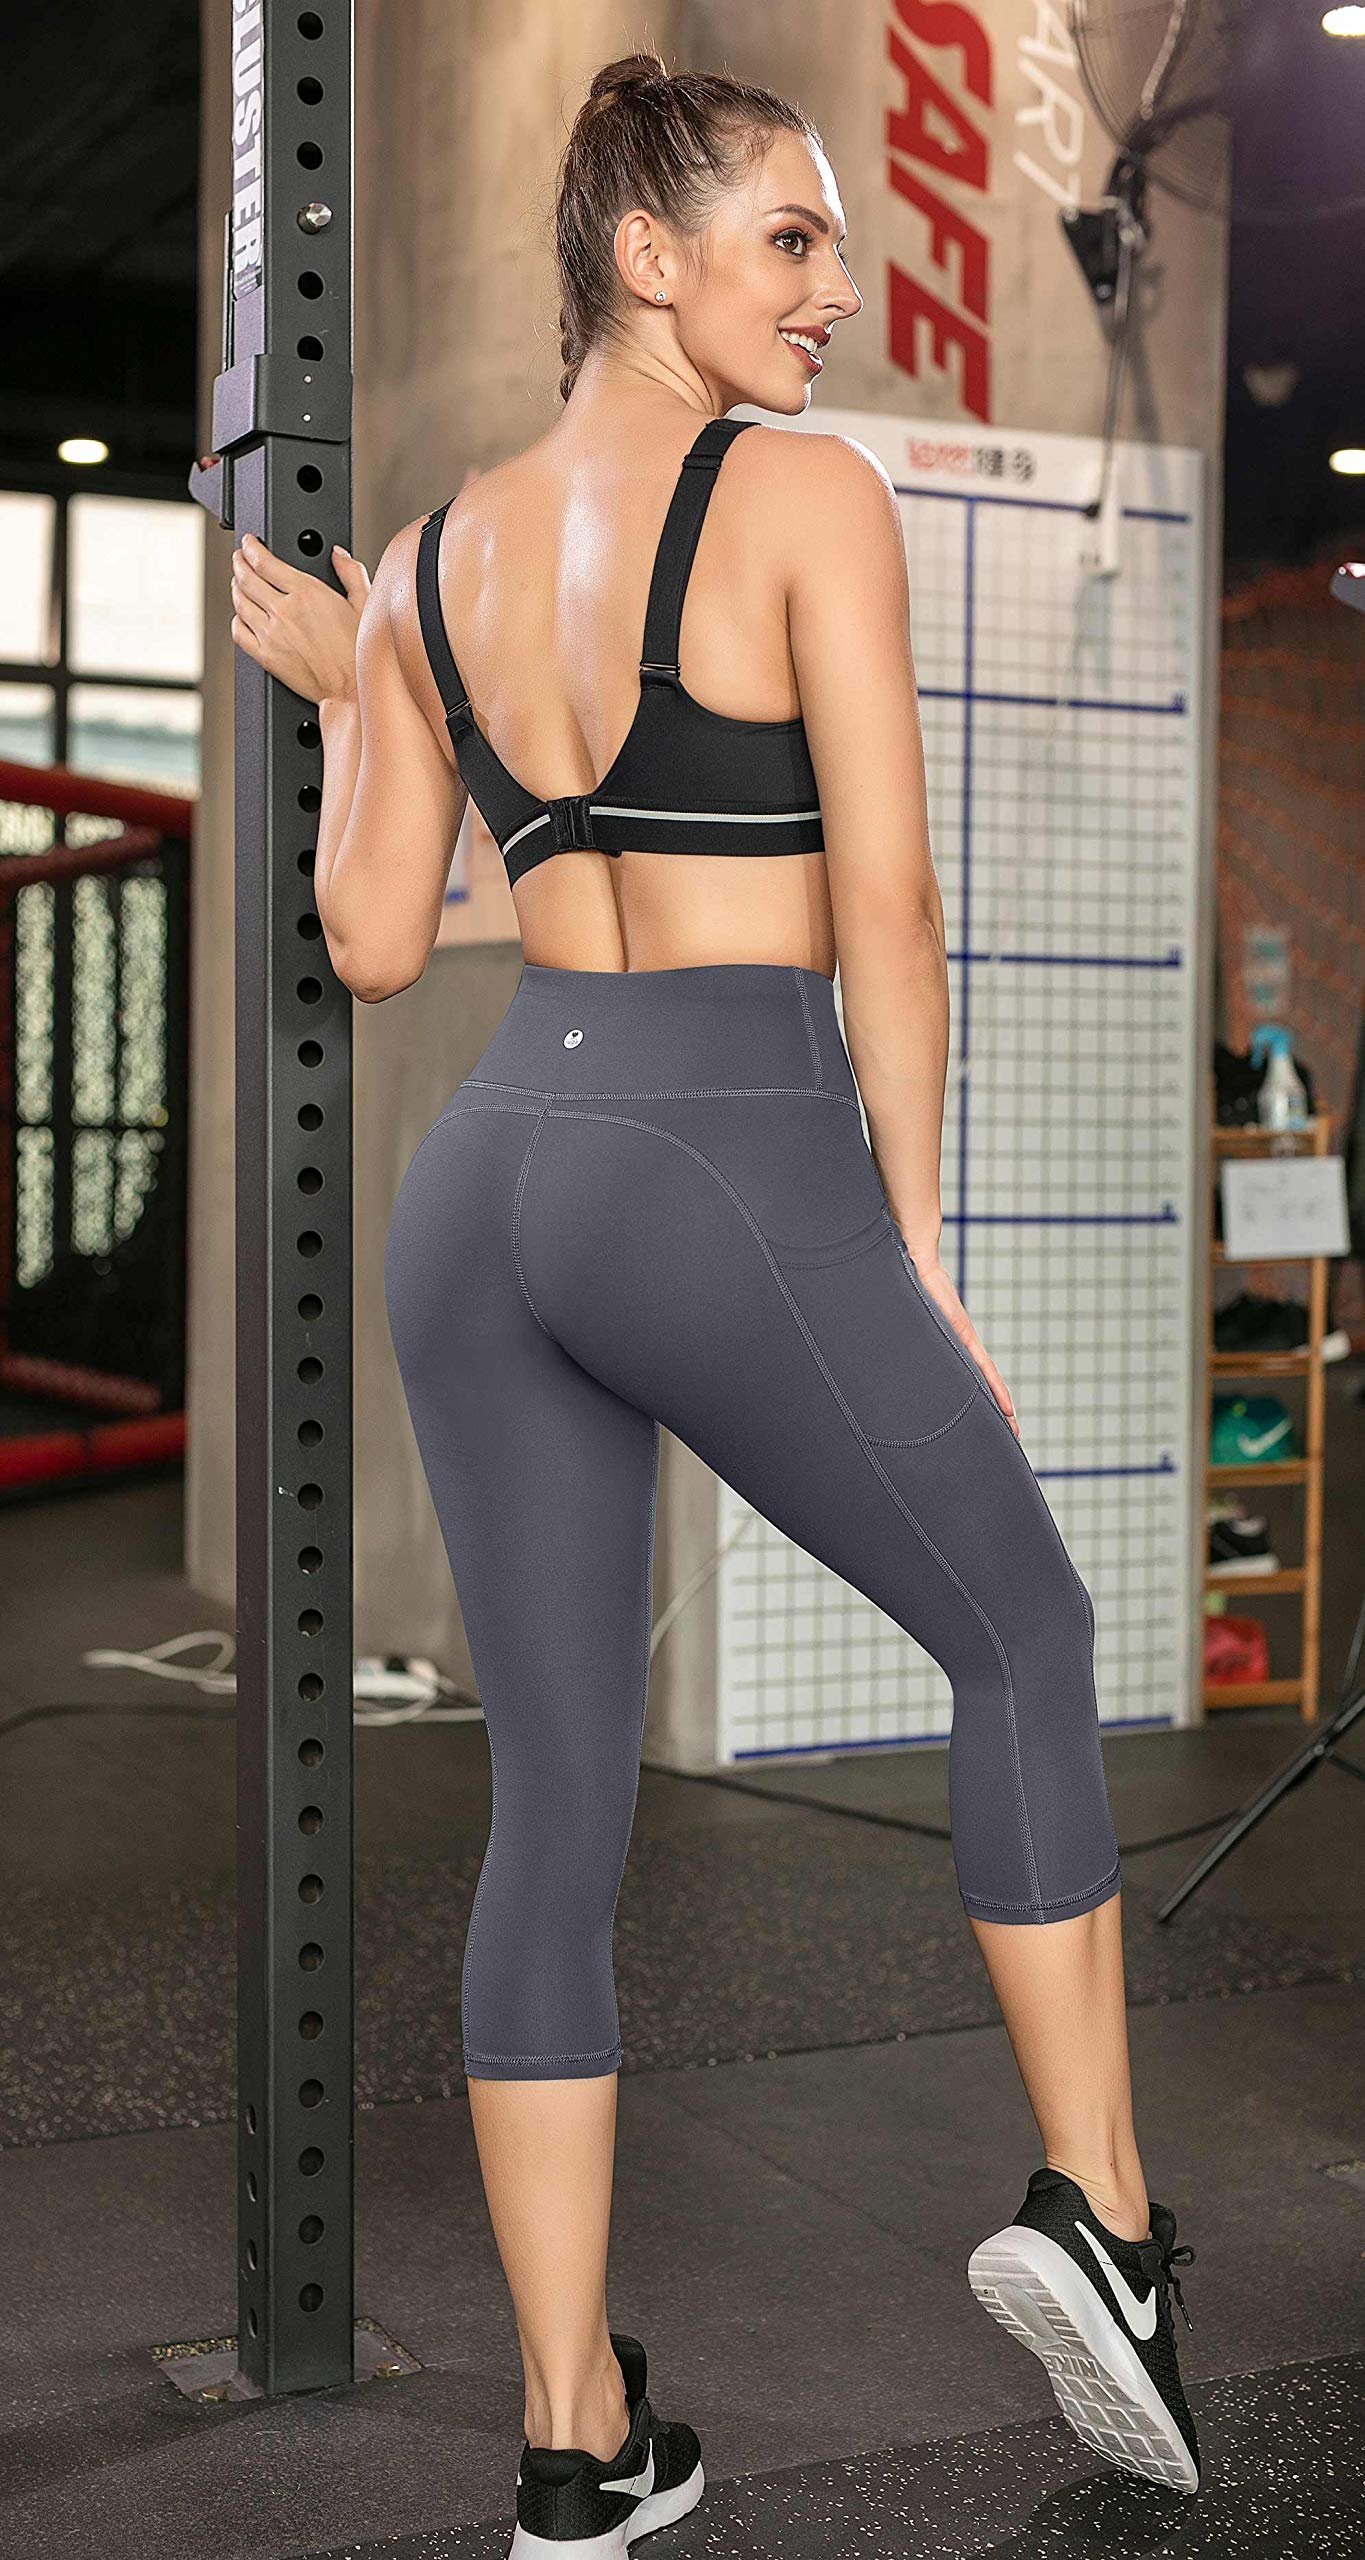 How to choose workout pants for women according to each body shape